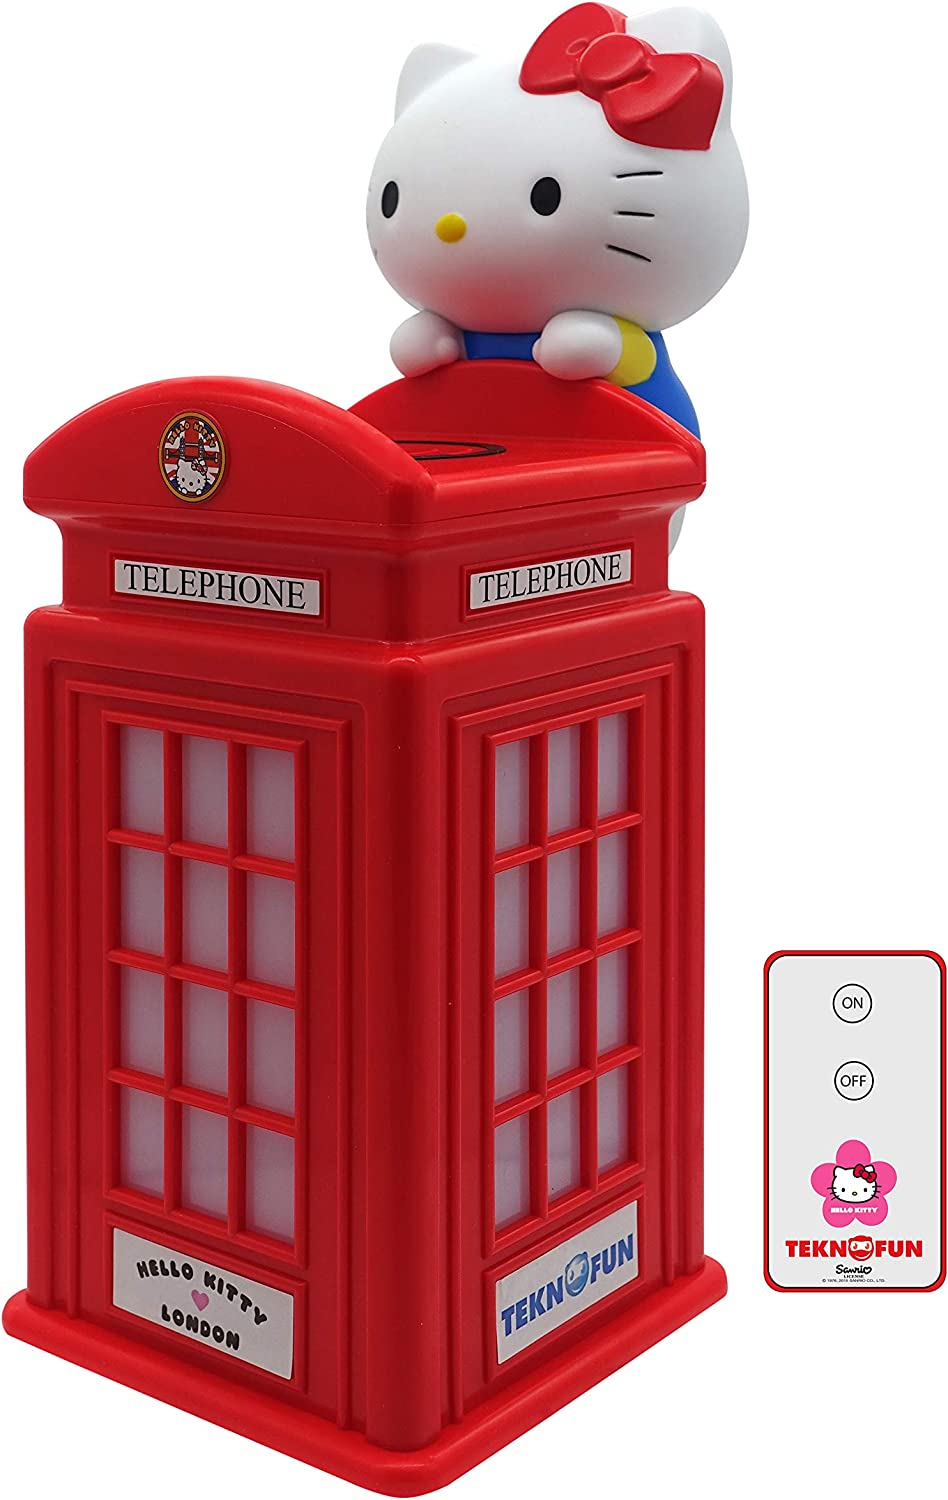 TEKNOFUN 811254 London Booth Smartphone Charger Wireless, Red